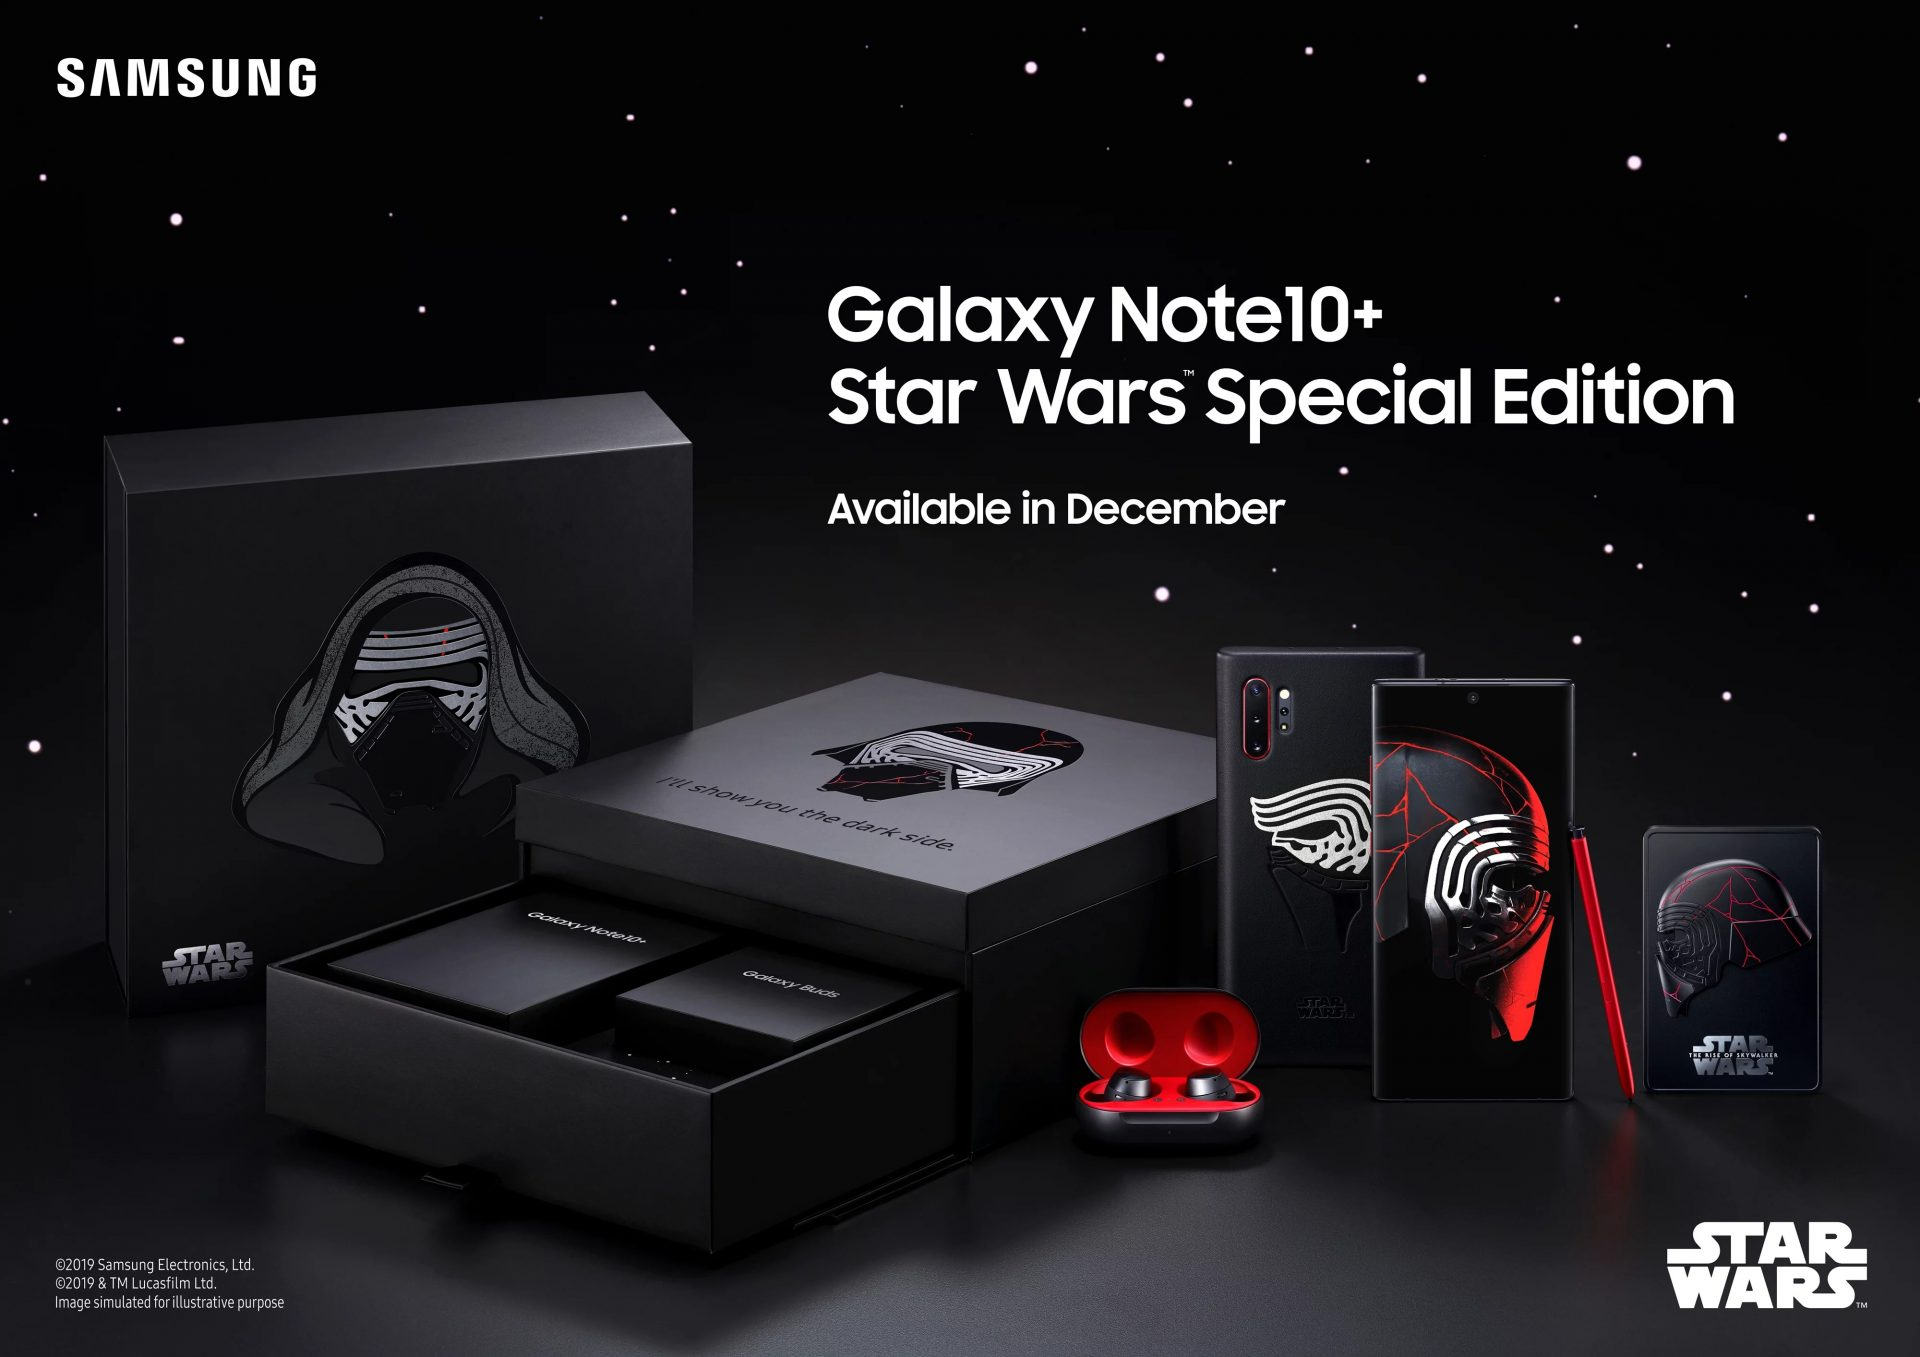 Galaxy Note 10+ Star Wars Special Edition